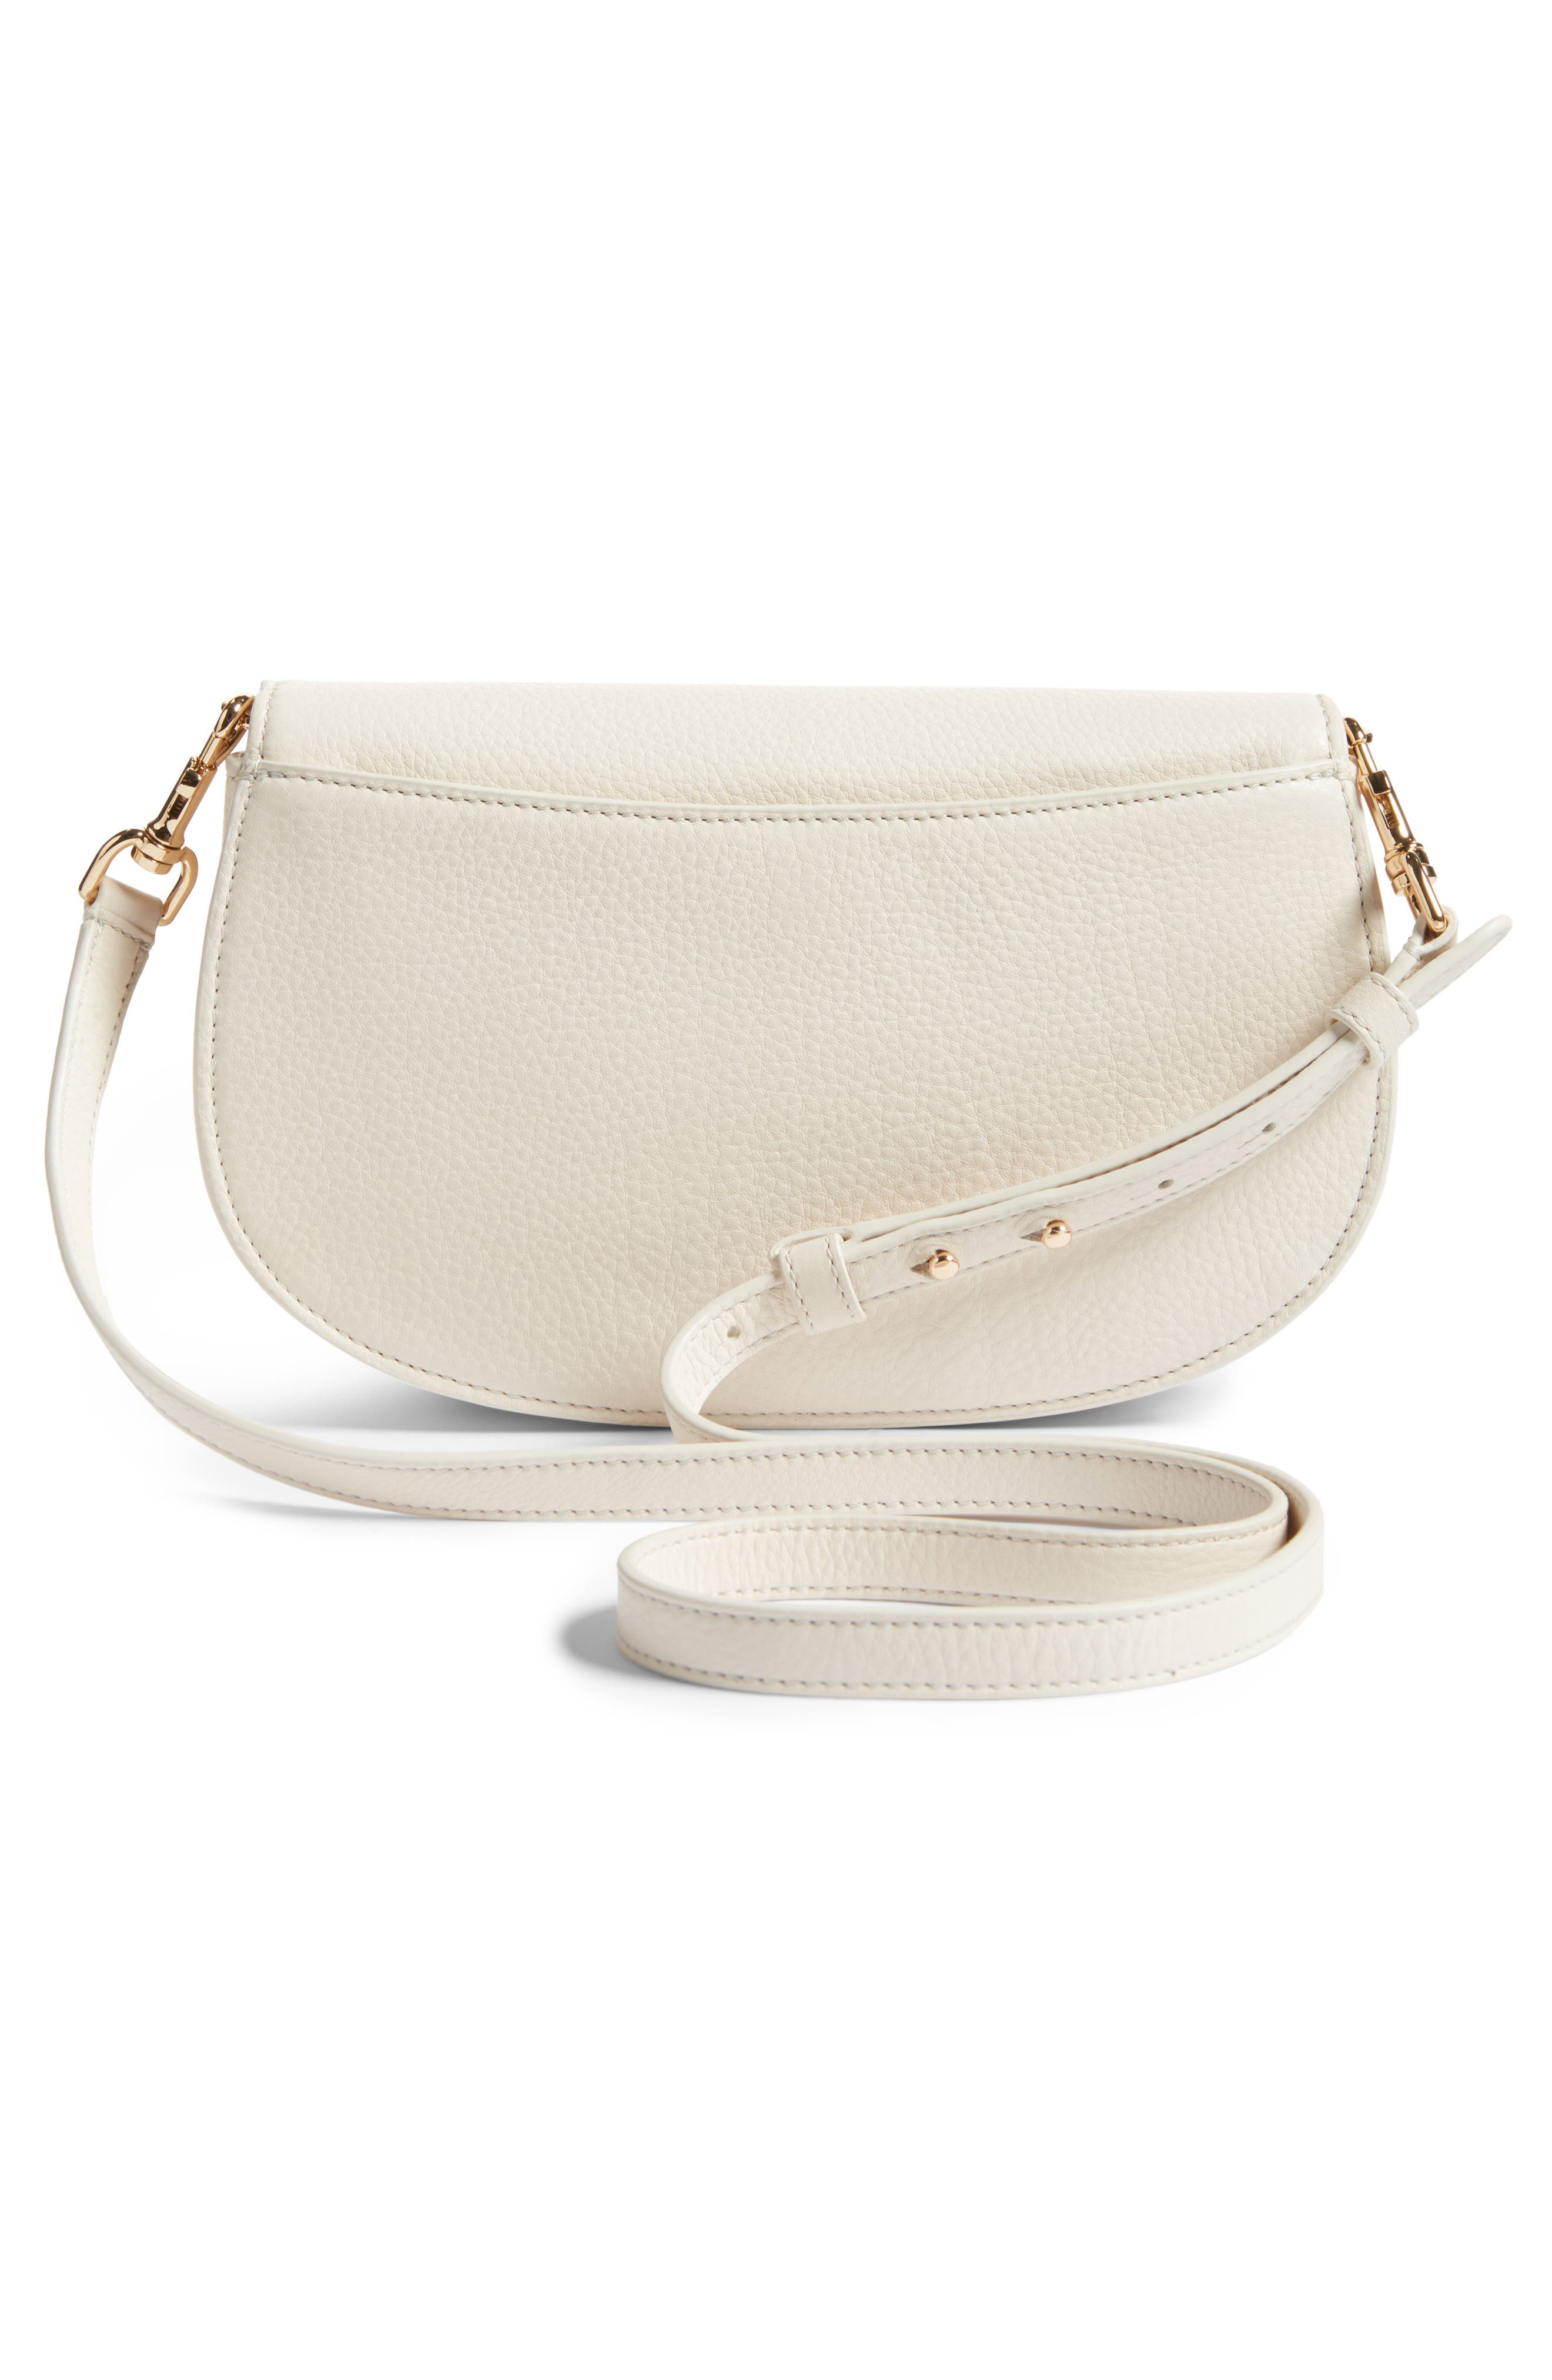 Jamie Convertible Leather Clutch,                             Alternate thumbnail 3, color,                             104